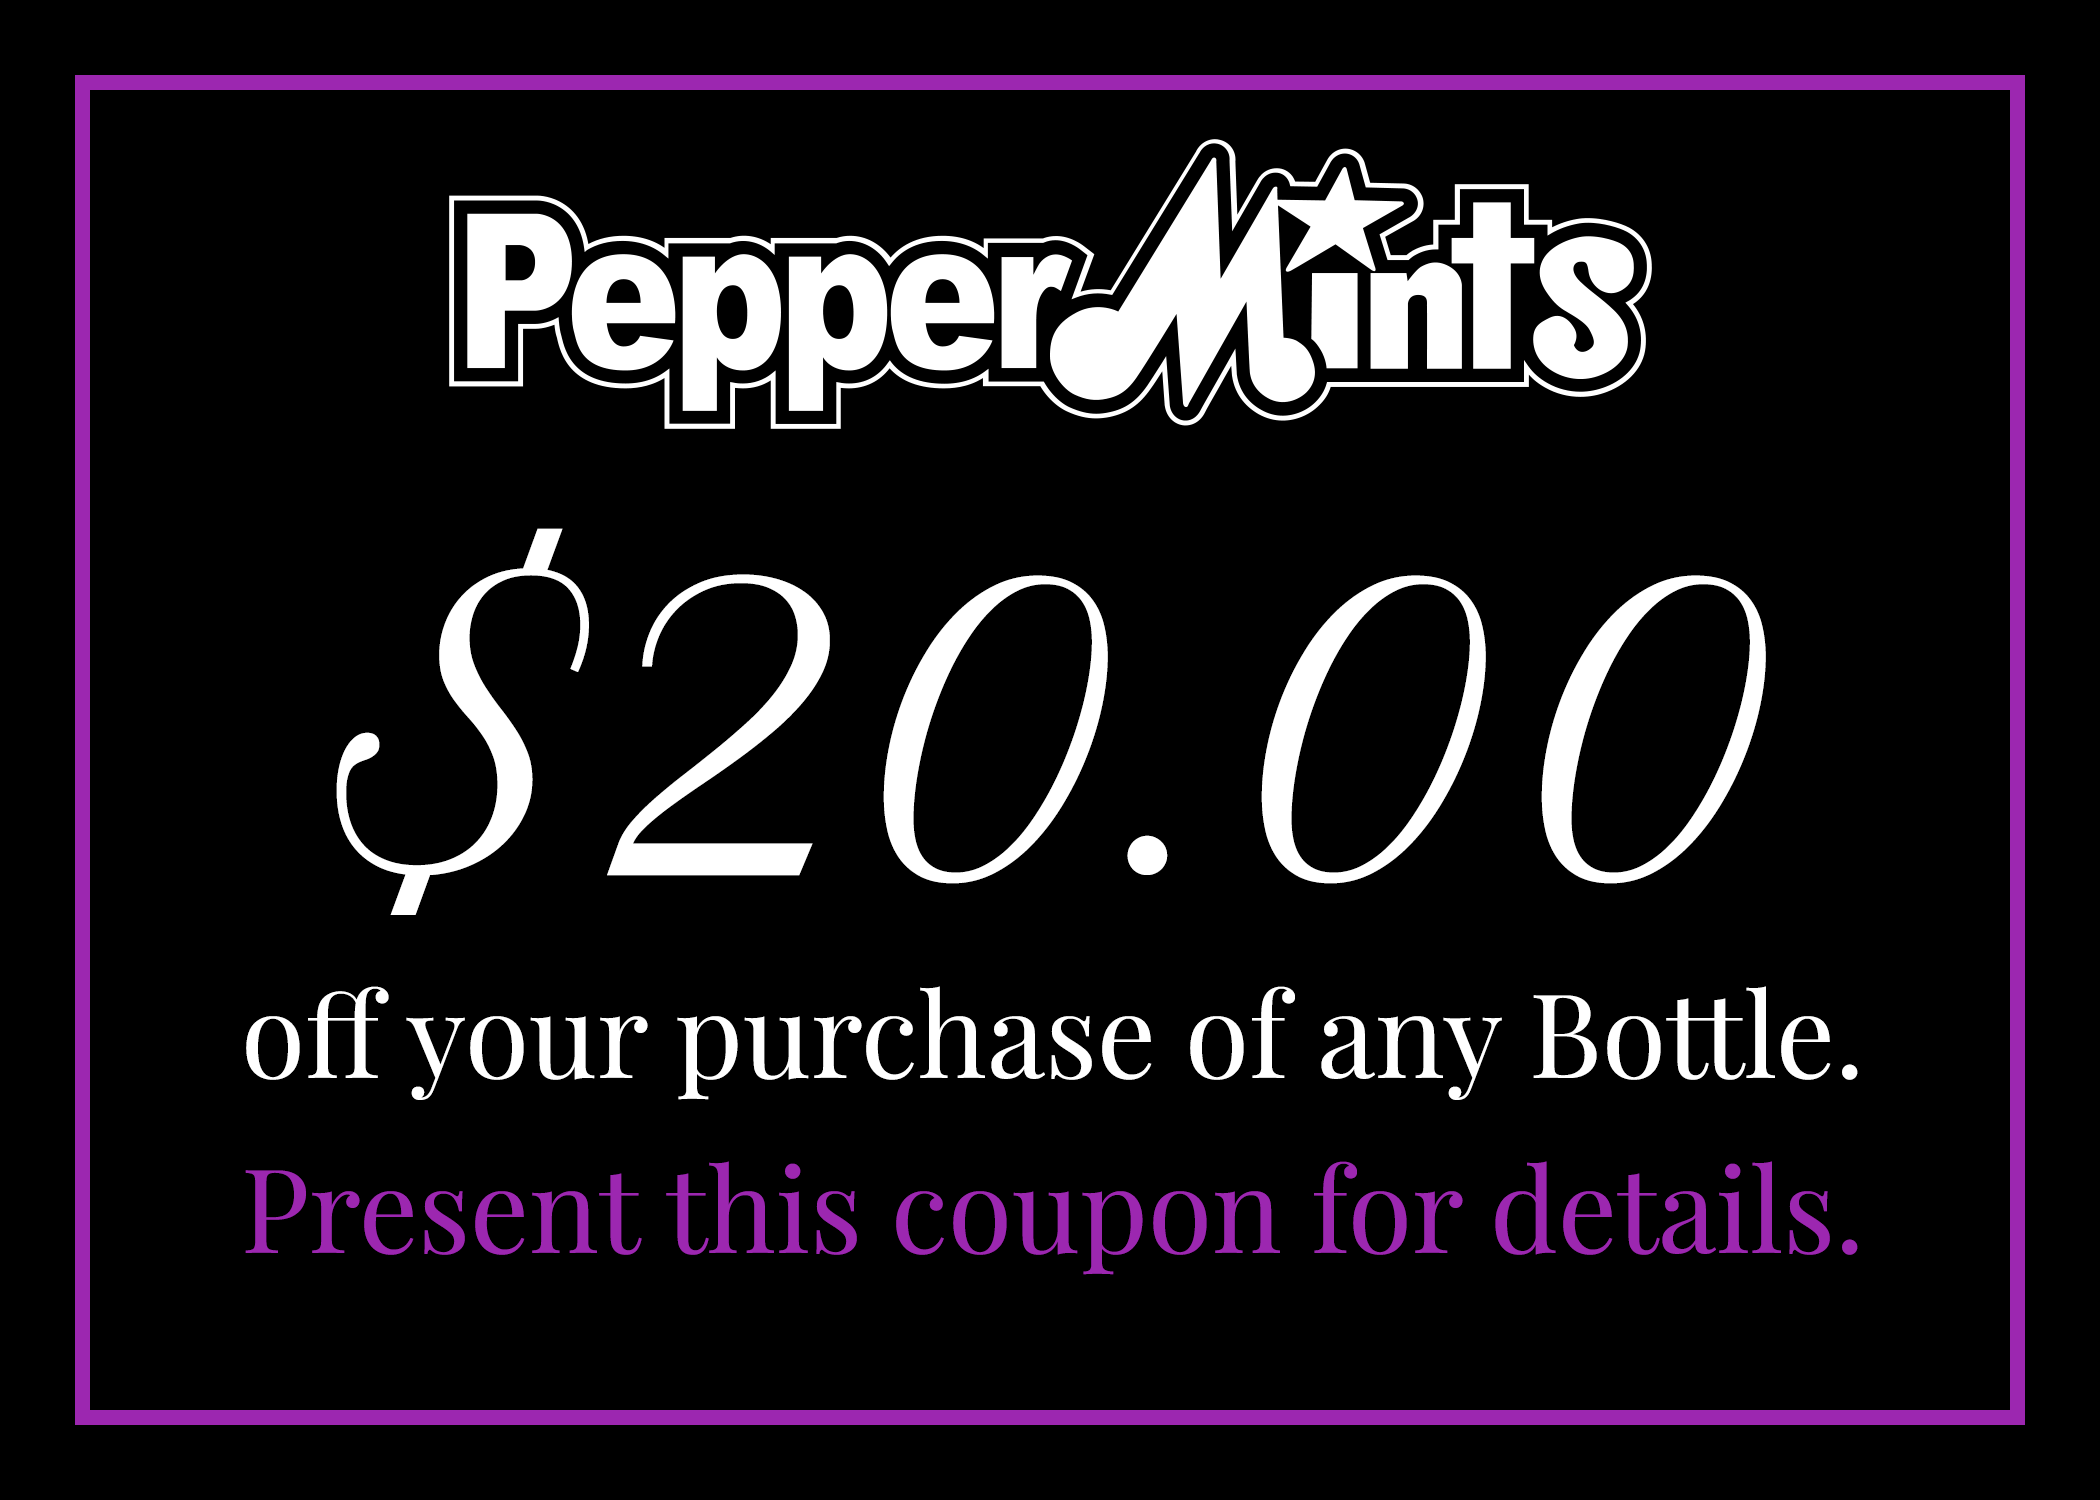 //www.mintsniagara.com/peppermints/wp-content/uploads/sites/3/2018/06/coupon-20.png